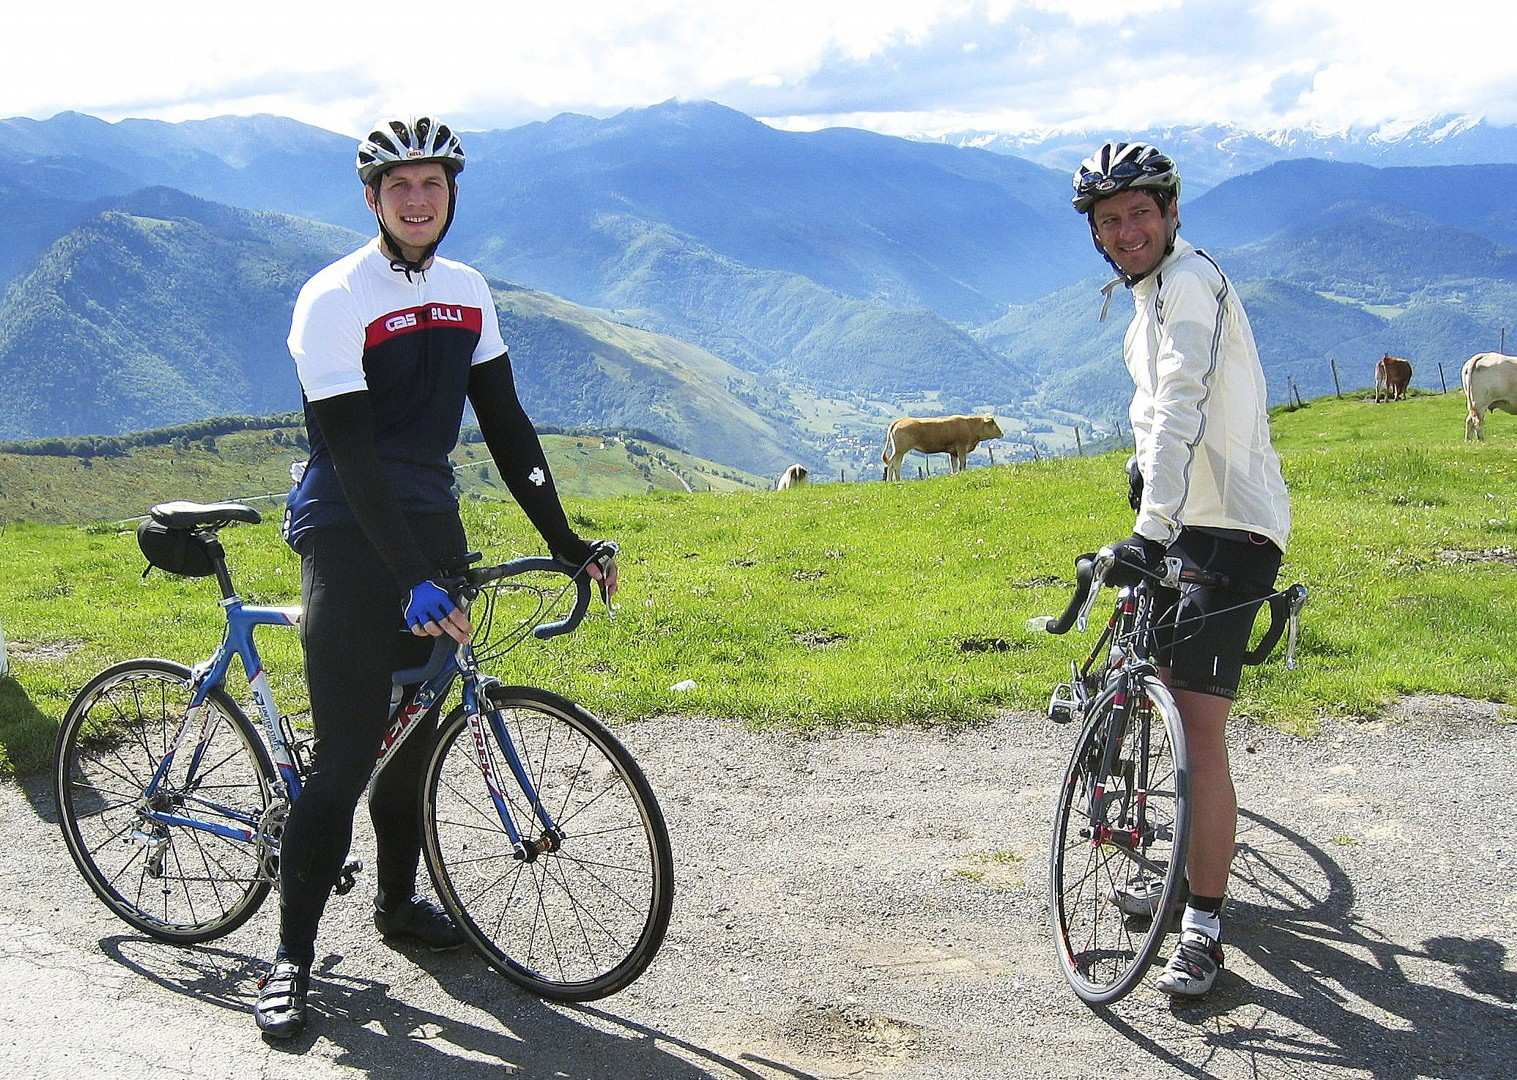 group-guided-cycling-france-pyrenees-fitness-week.jpg - France - Pyrenees Fitness Week (Grade 2-3) - Guided Road Cycling Holiday - Road Cycling